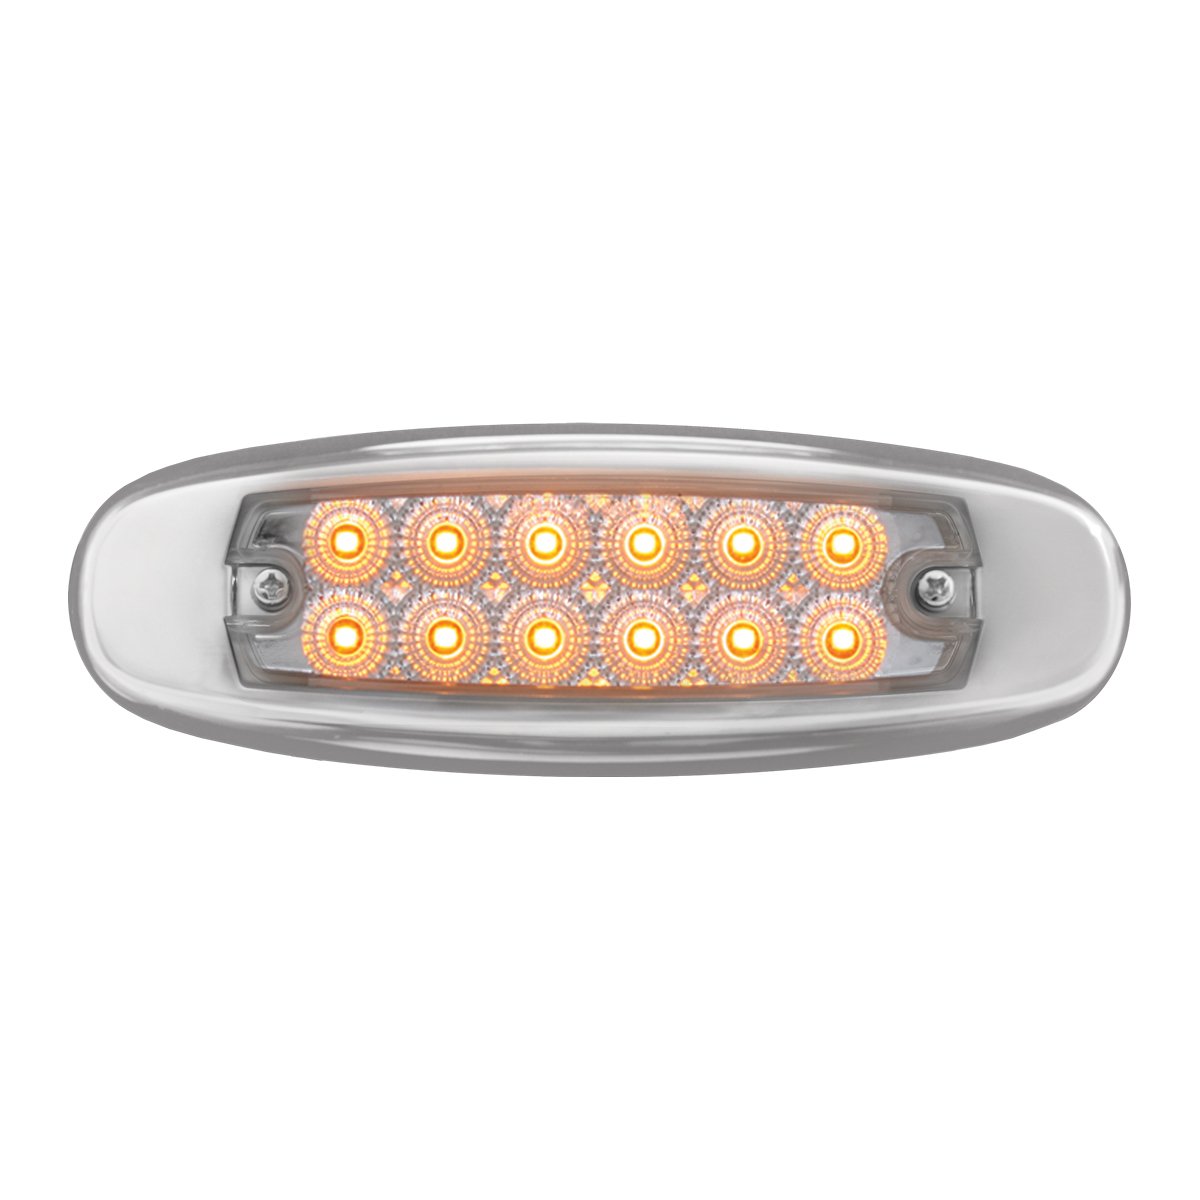 76441 Ultra Thin Dual Function Spyder LED Light w/ Stainless Steel Bezel